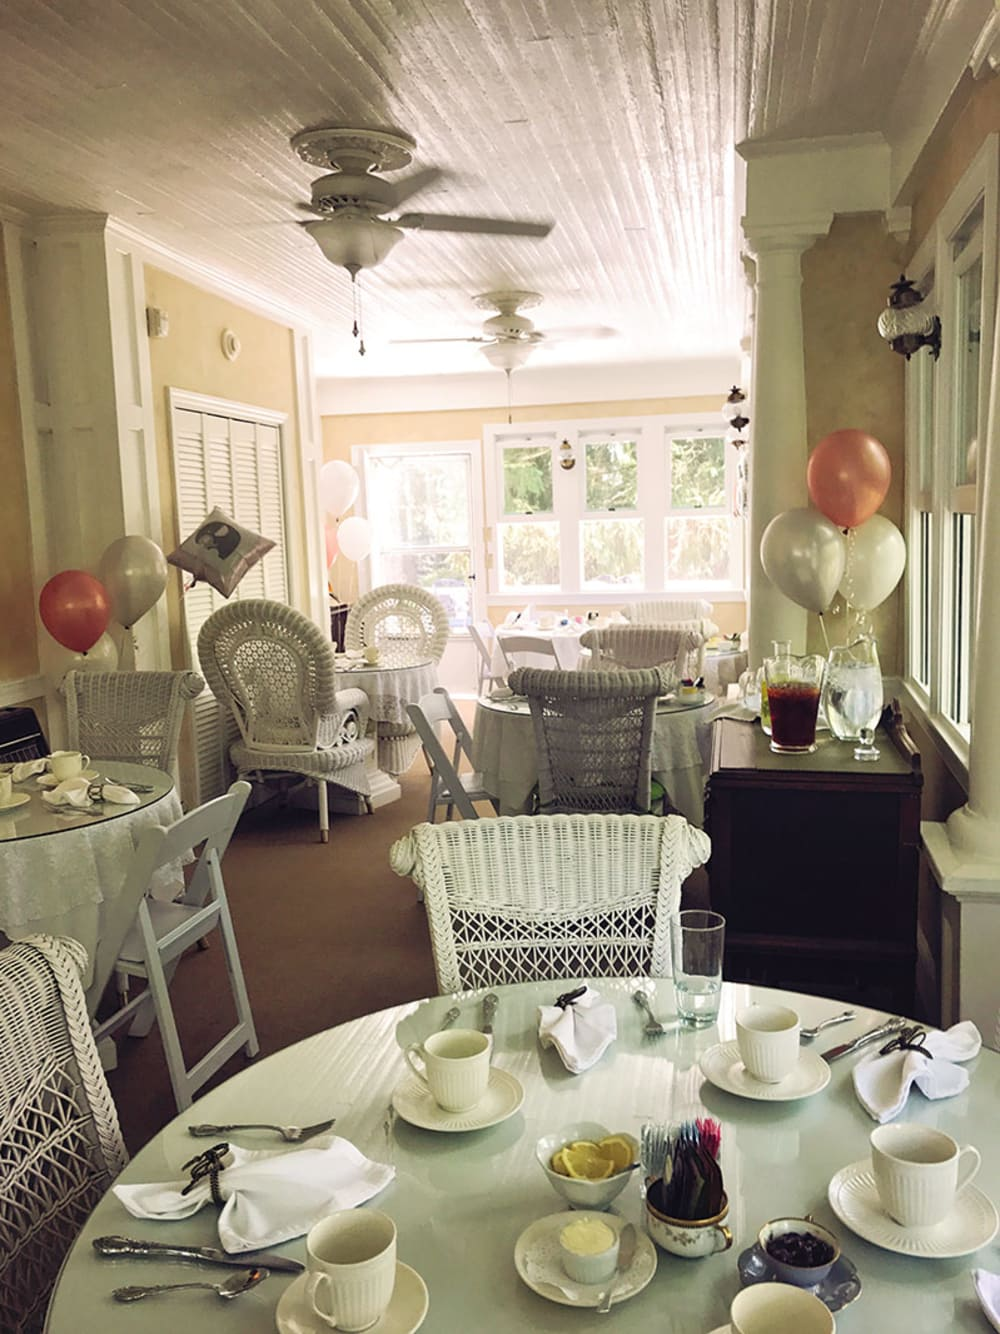 Private Afternoon Tea Events